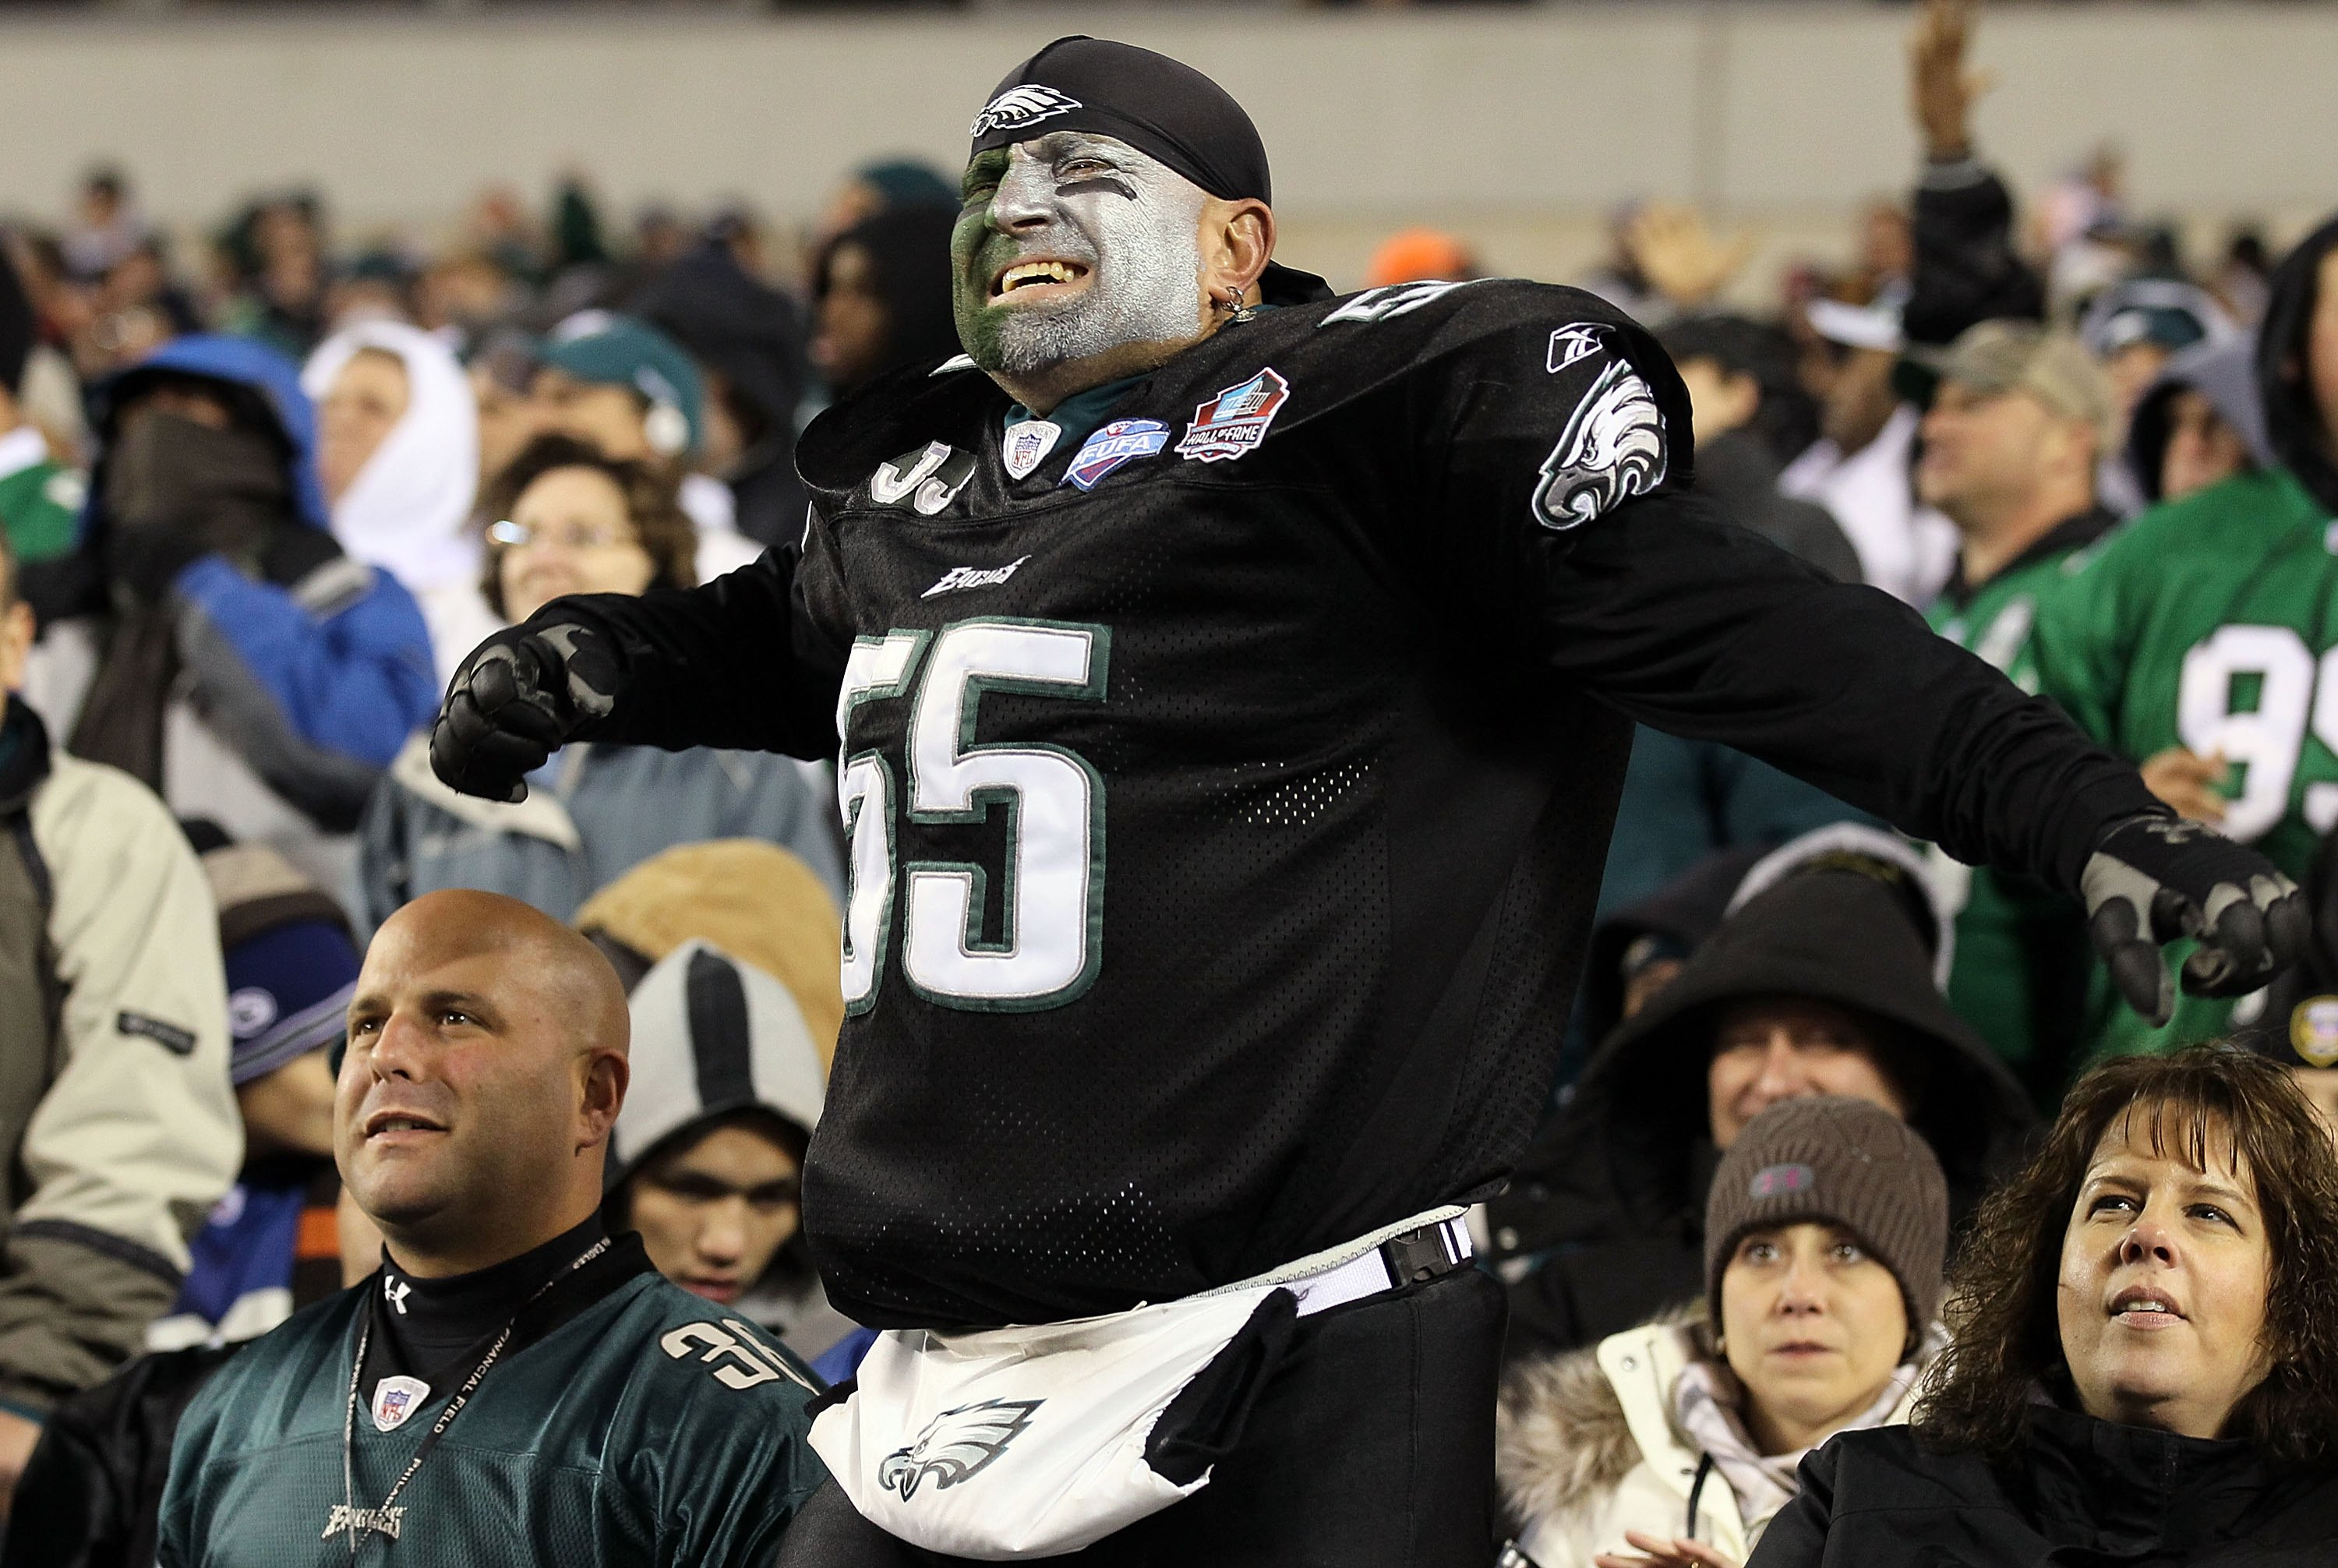 PHILADELPHIA - NOVEMBER 07:  A fan of the Philadelphia Eagles cheers against the Indianapolis Colts on November 7, 2010 at Lincoln Financial Field in Philadelphia, Pennsylvania. The Eagles defeated the Colts 26-24.  (Photo by Jim McIsaac/Getty Images)